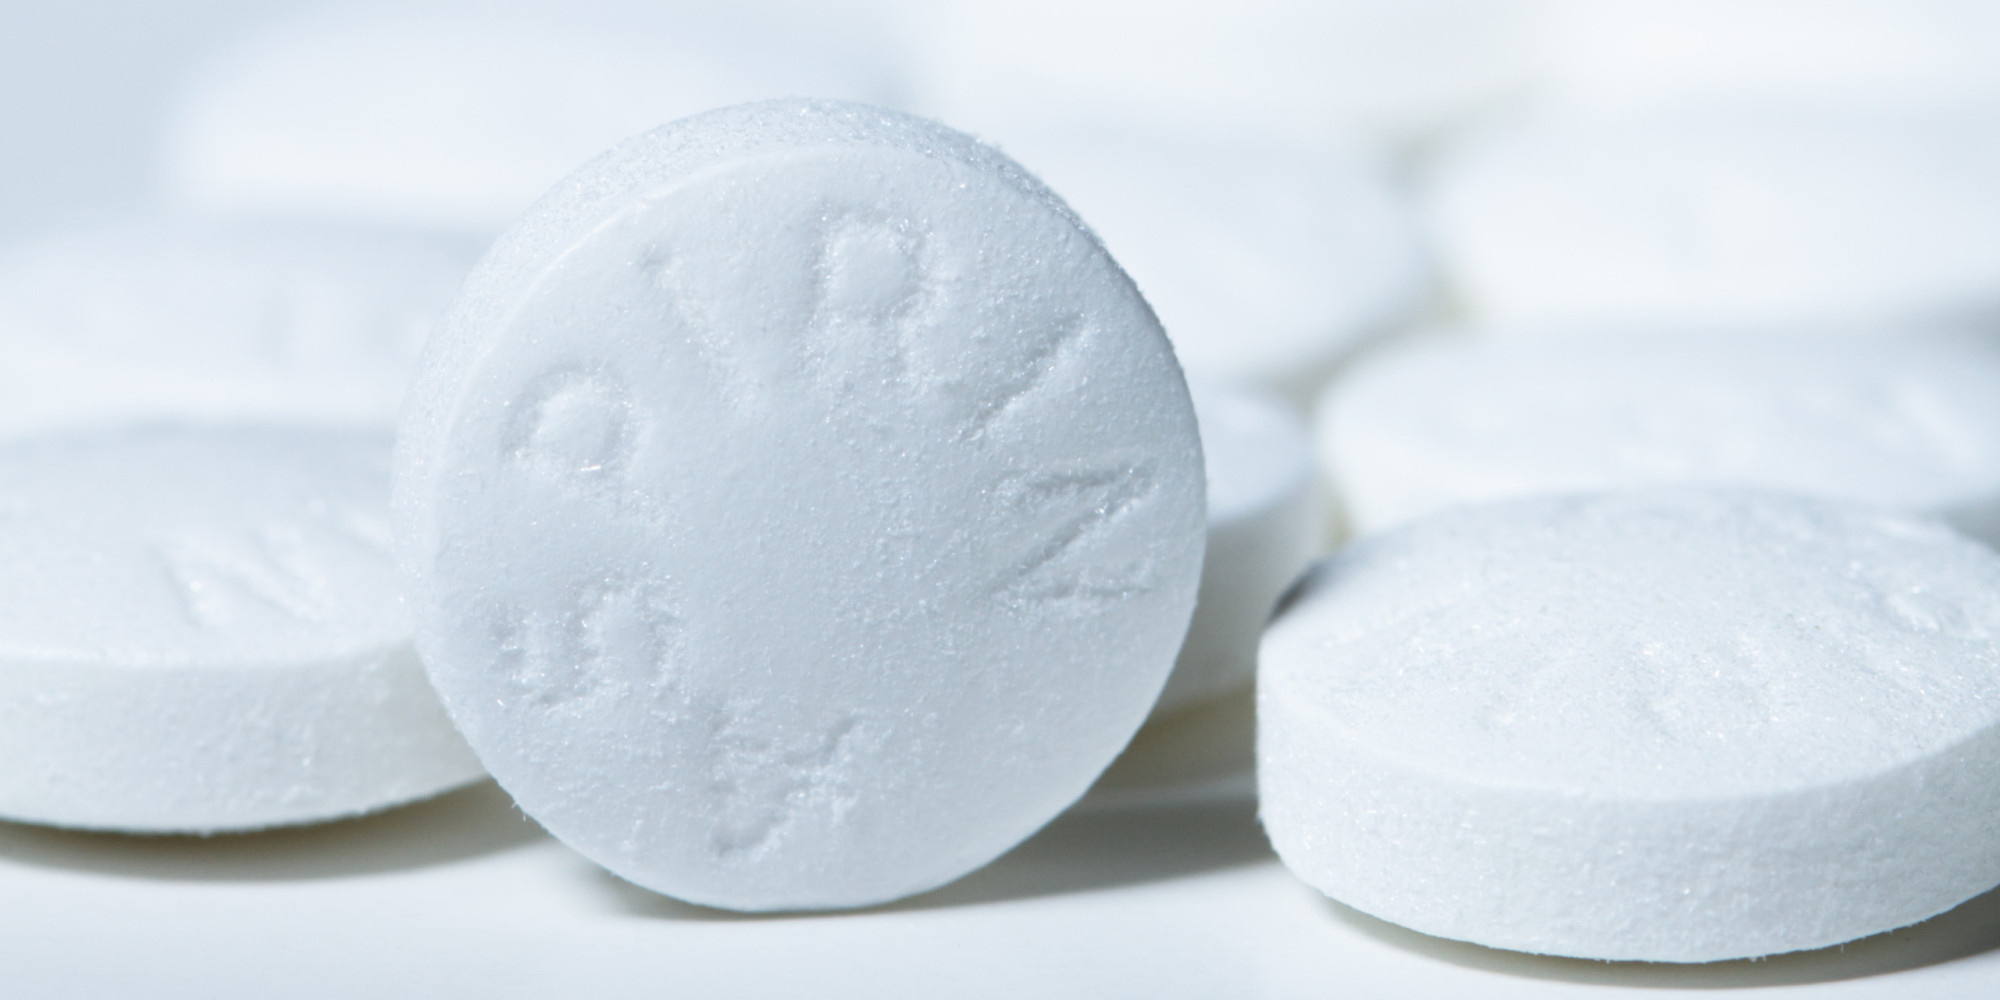 fda questions use of aspirin to prevent first heart attack